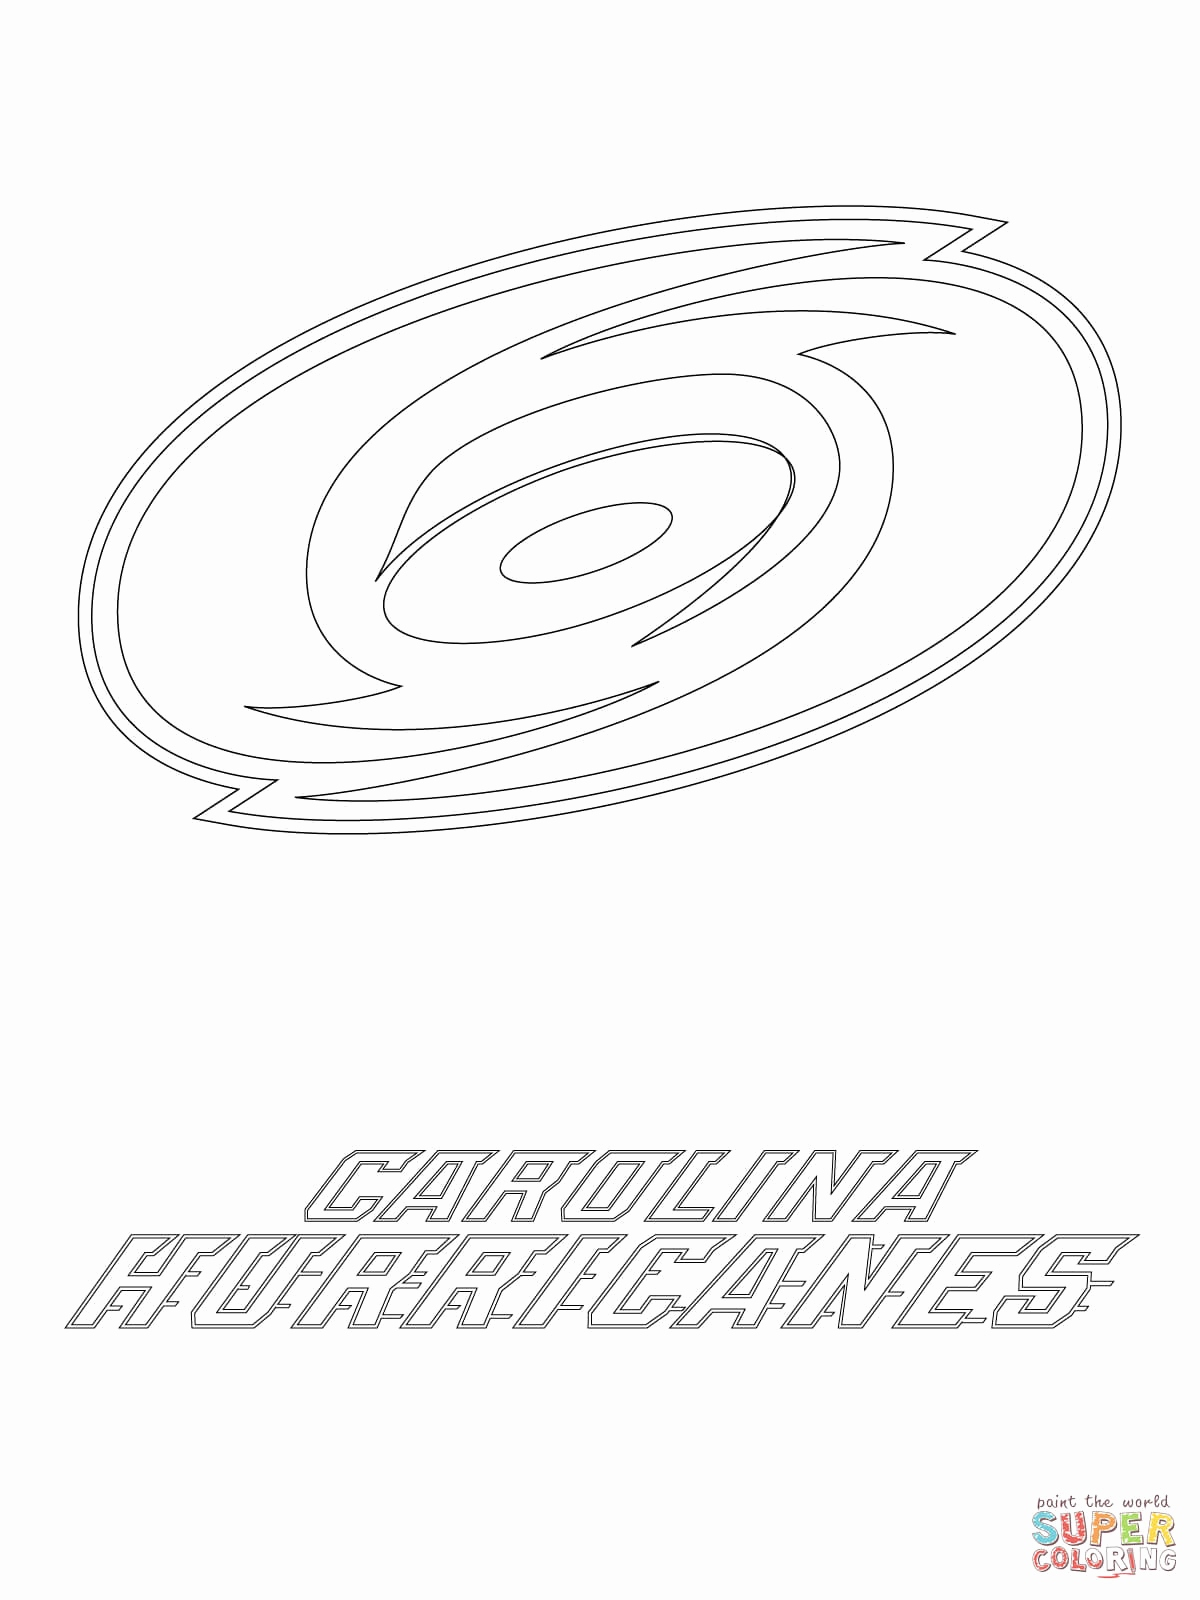 Carolina Panthers Logo Coloring Pages at GetDrawings.com | Free for ...